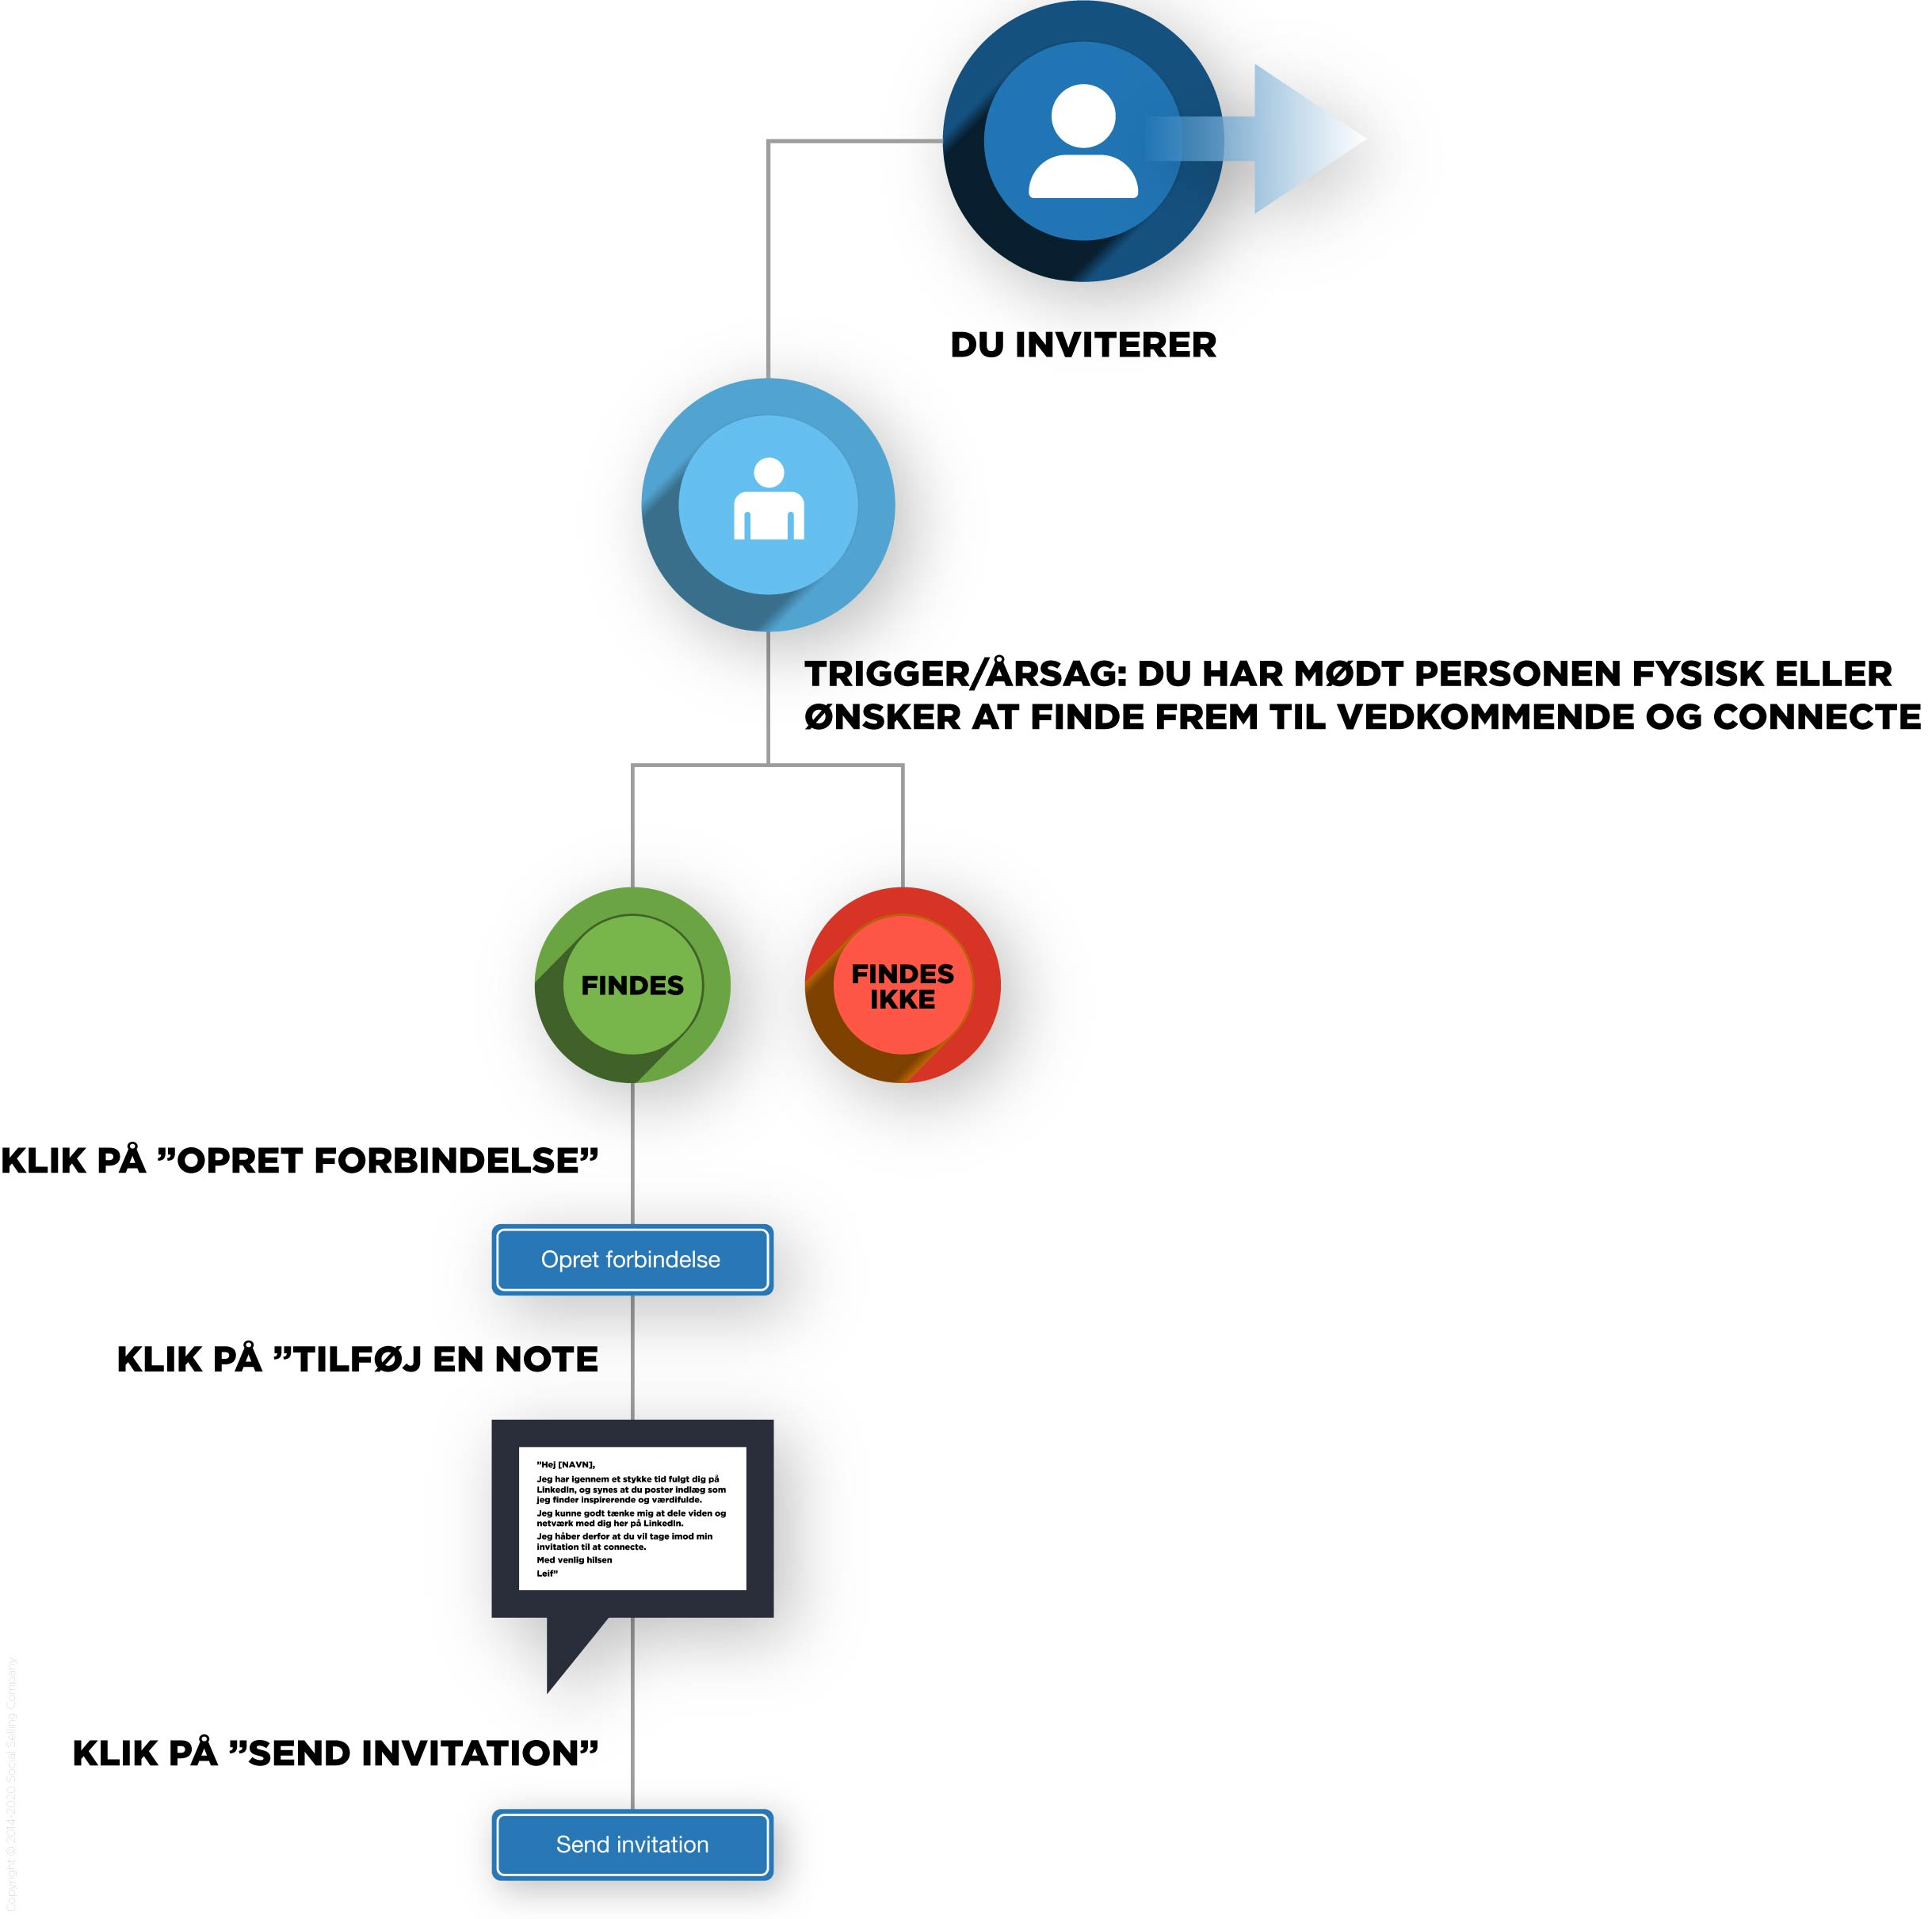 Flow chart for hvordan du sender en invitation på LinkedIn